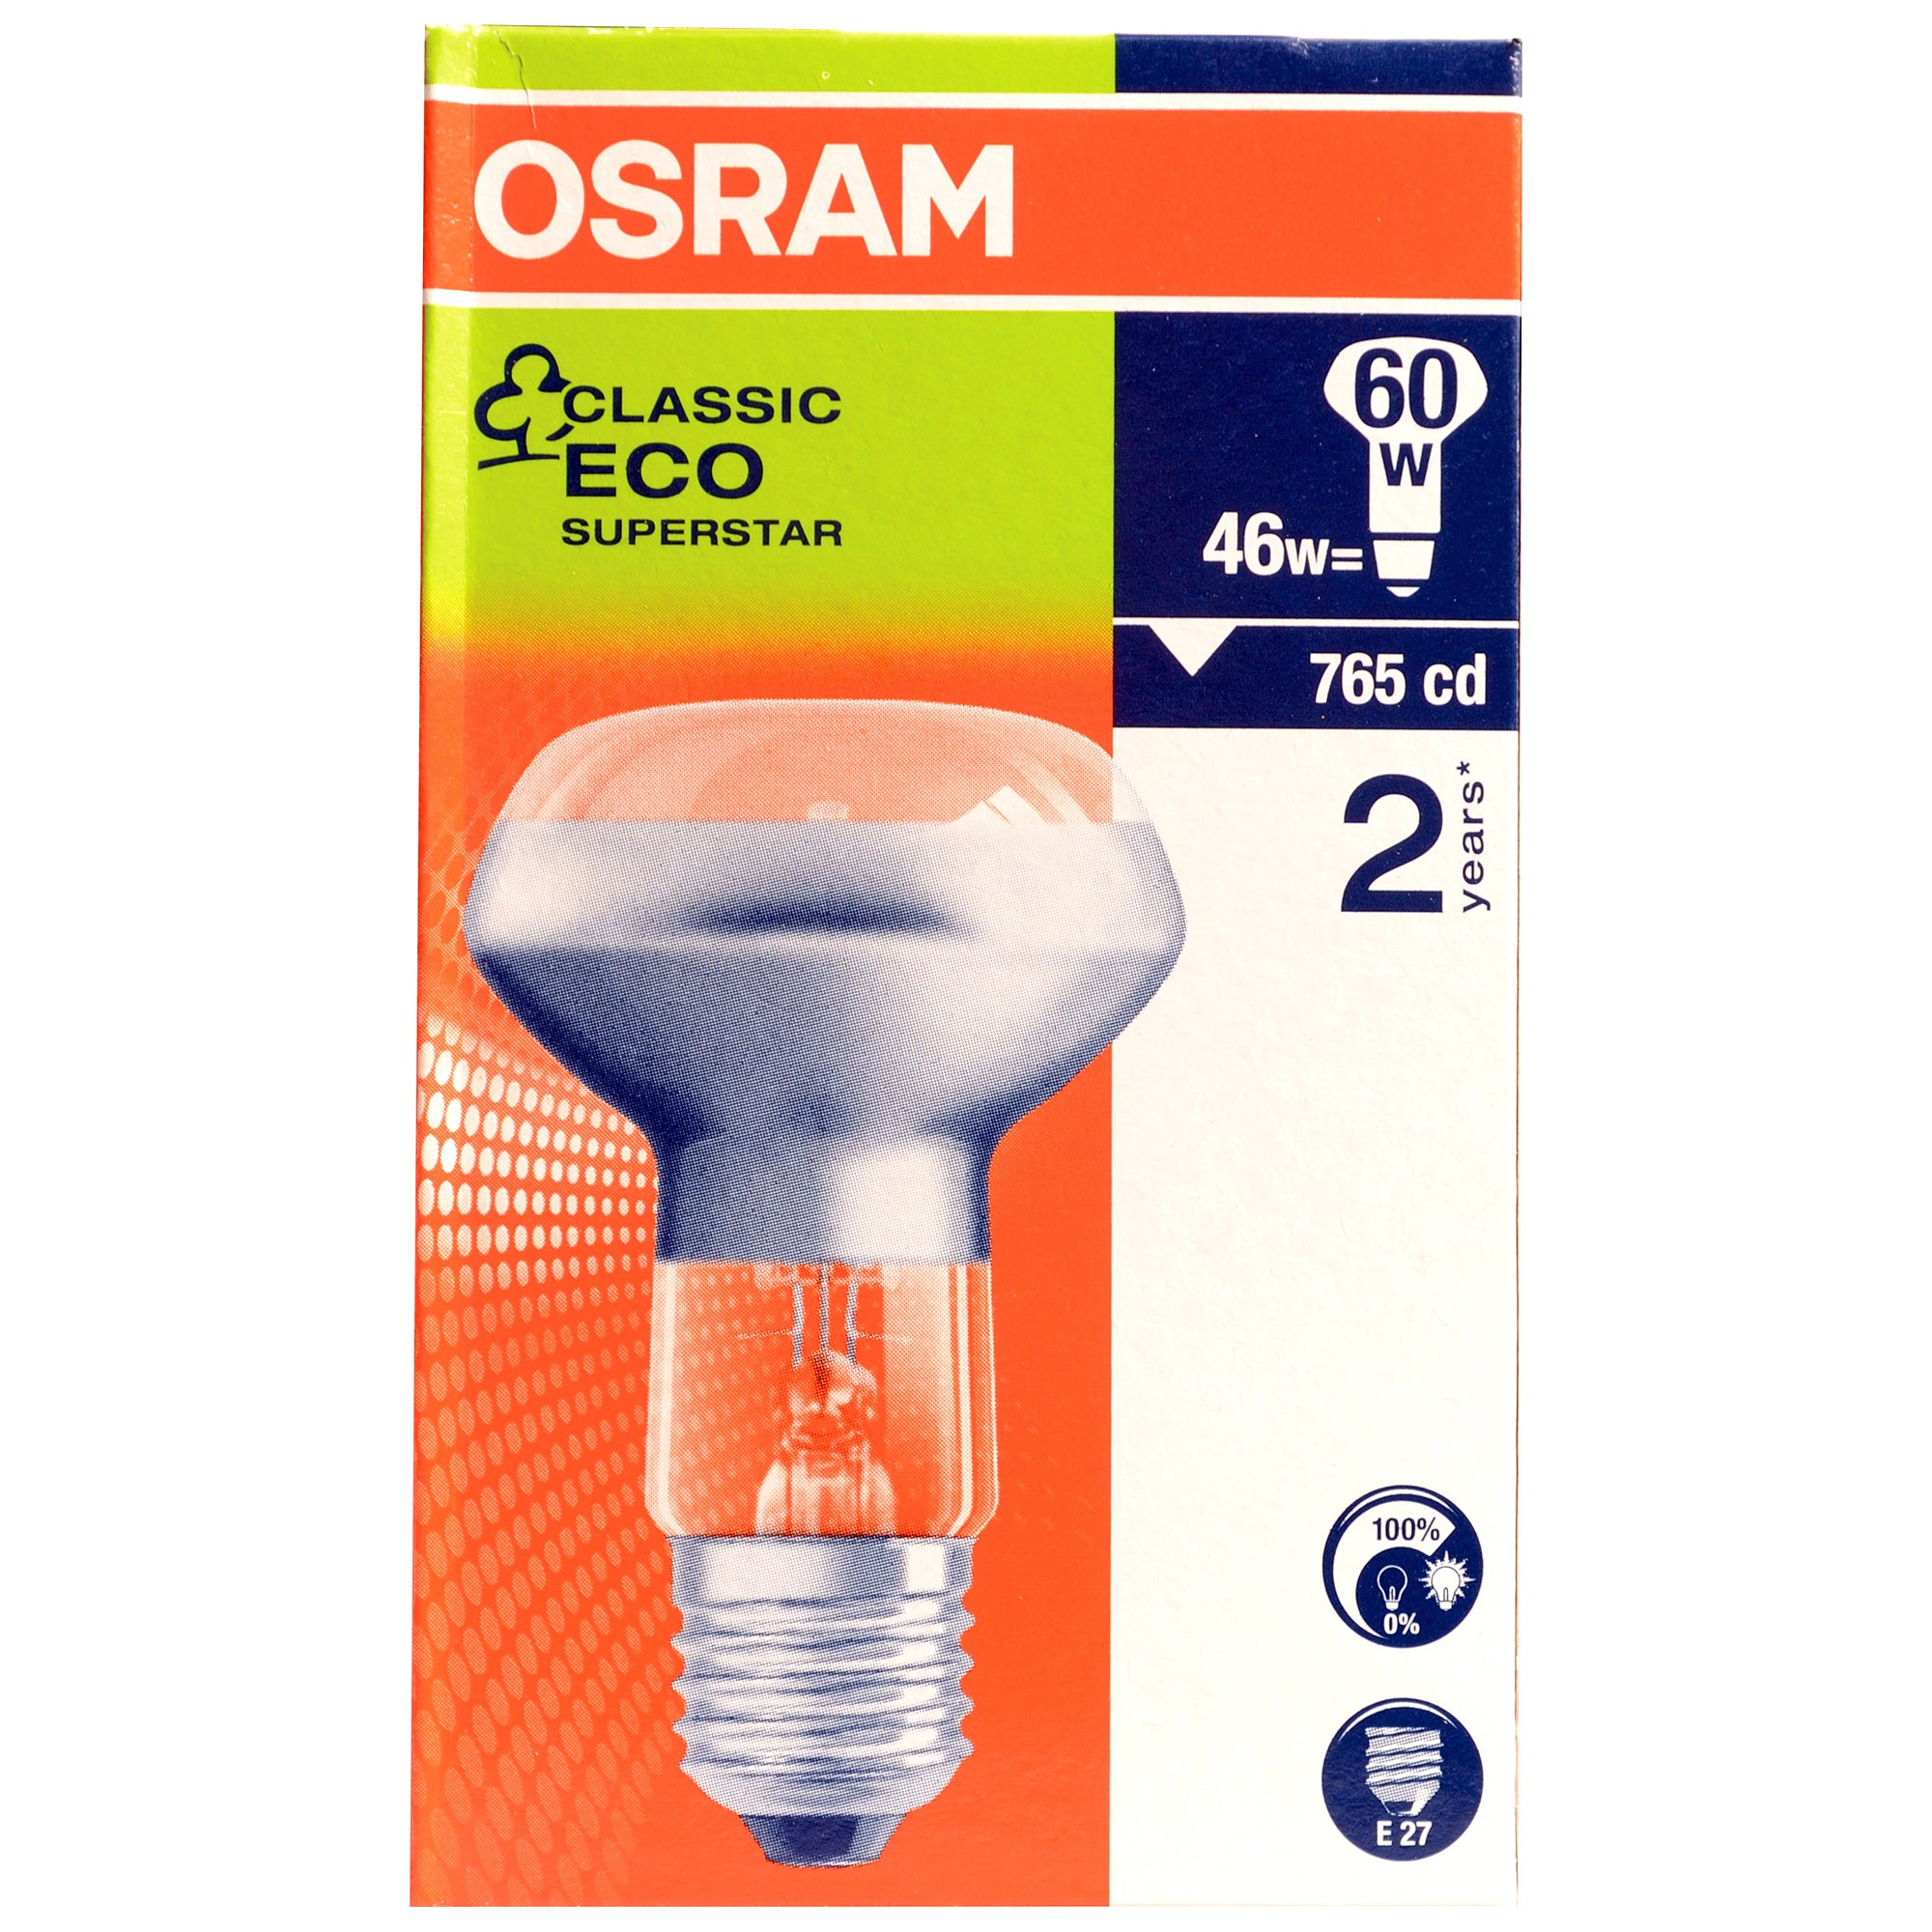 Osram Halogen Eco 46 Watt Spot Light Bulb